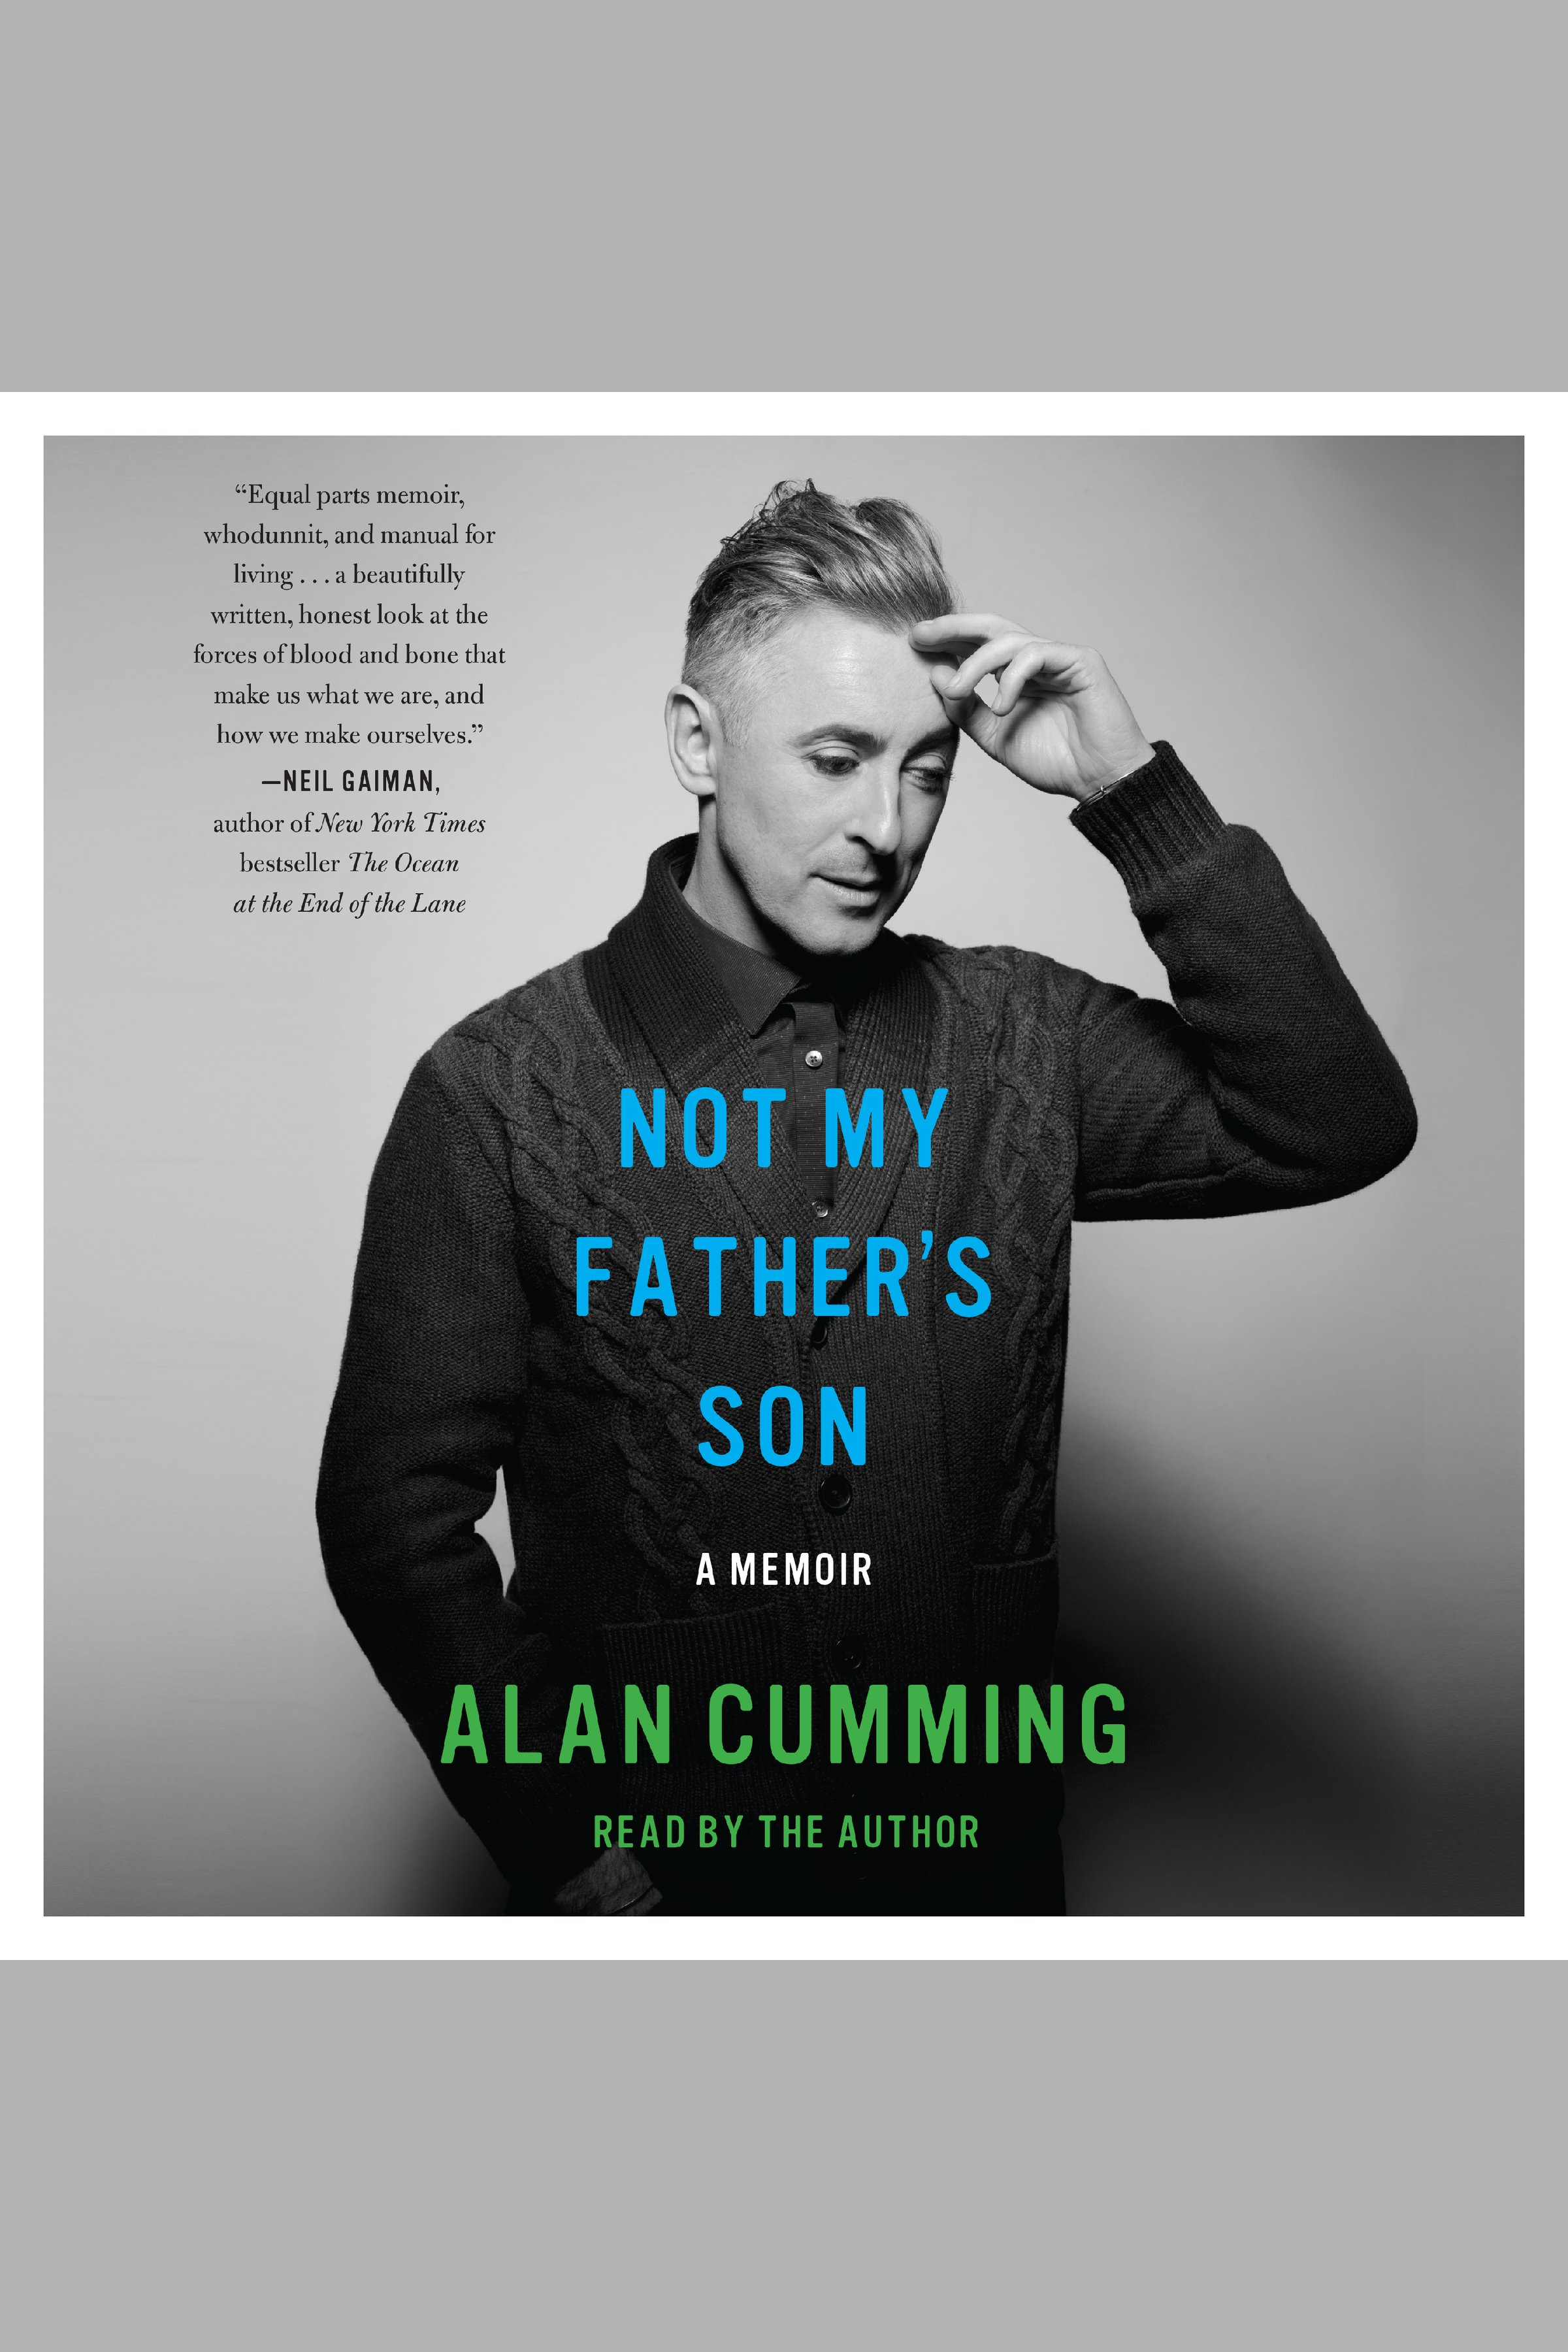 Not my father's son a memoir cover image